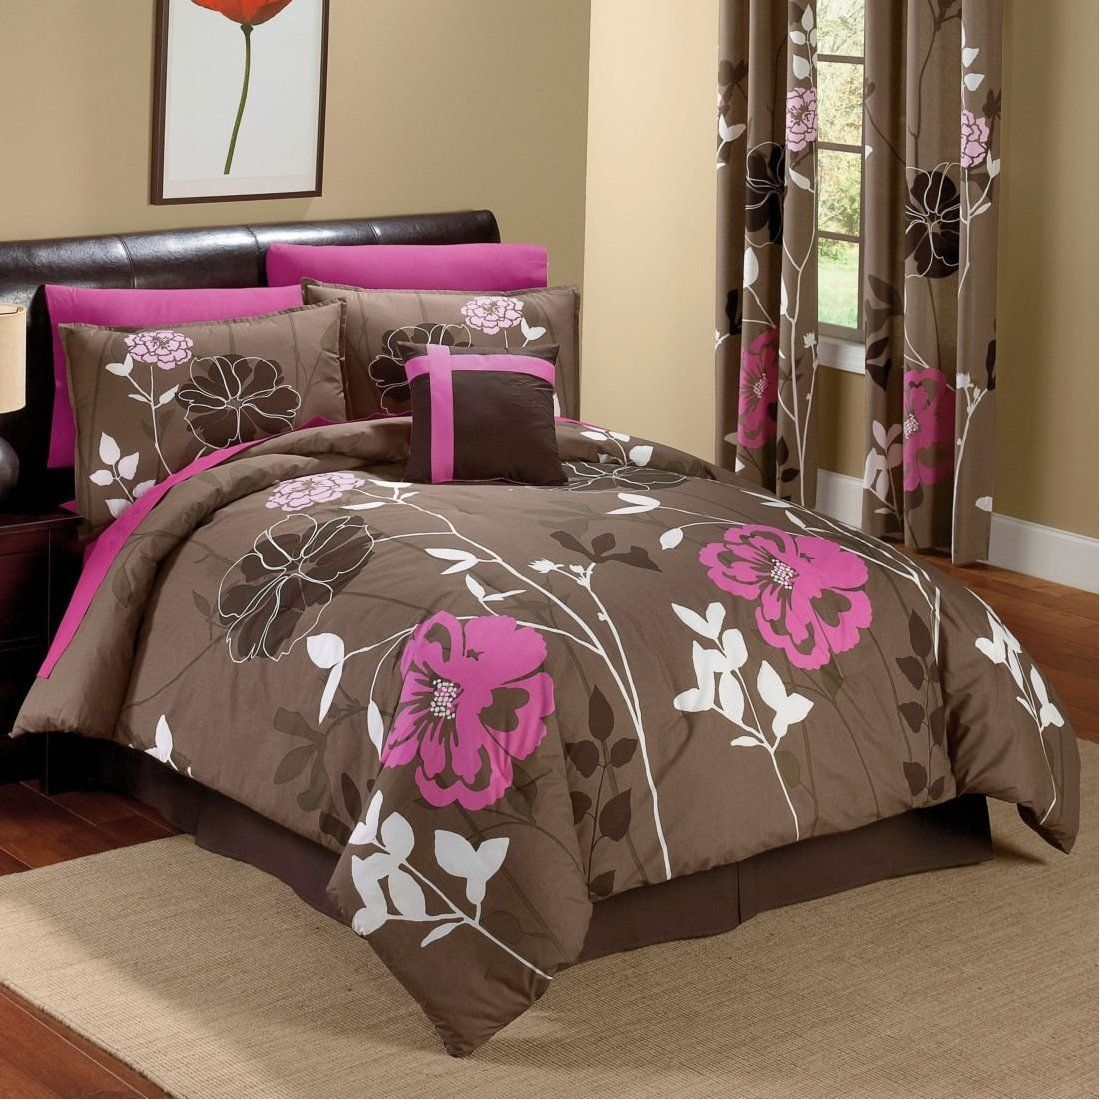 Chocolate And Pink Floral Comforter Set Night Night Sweet Dreams